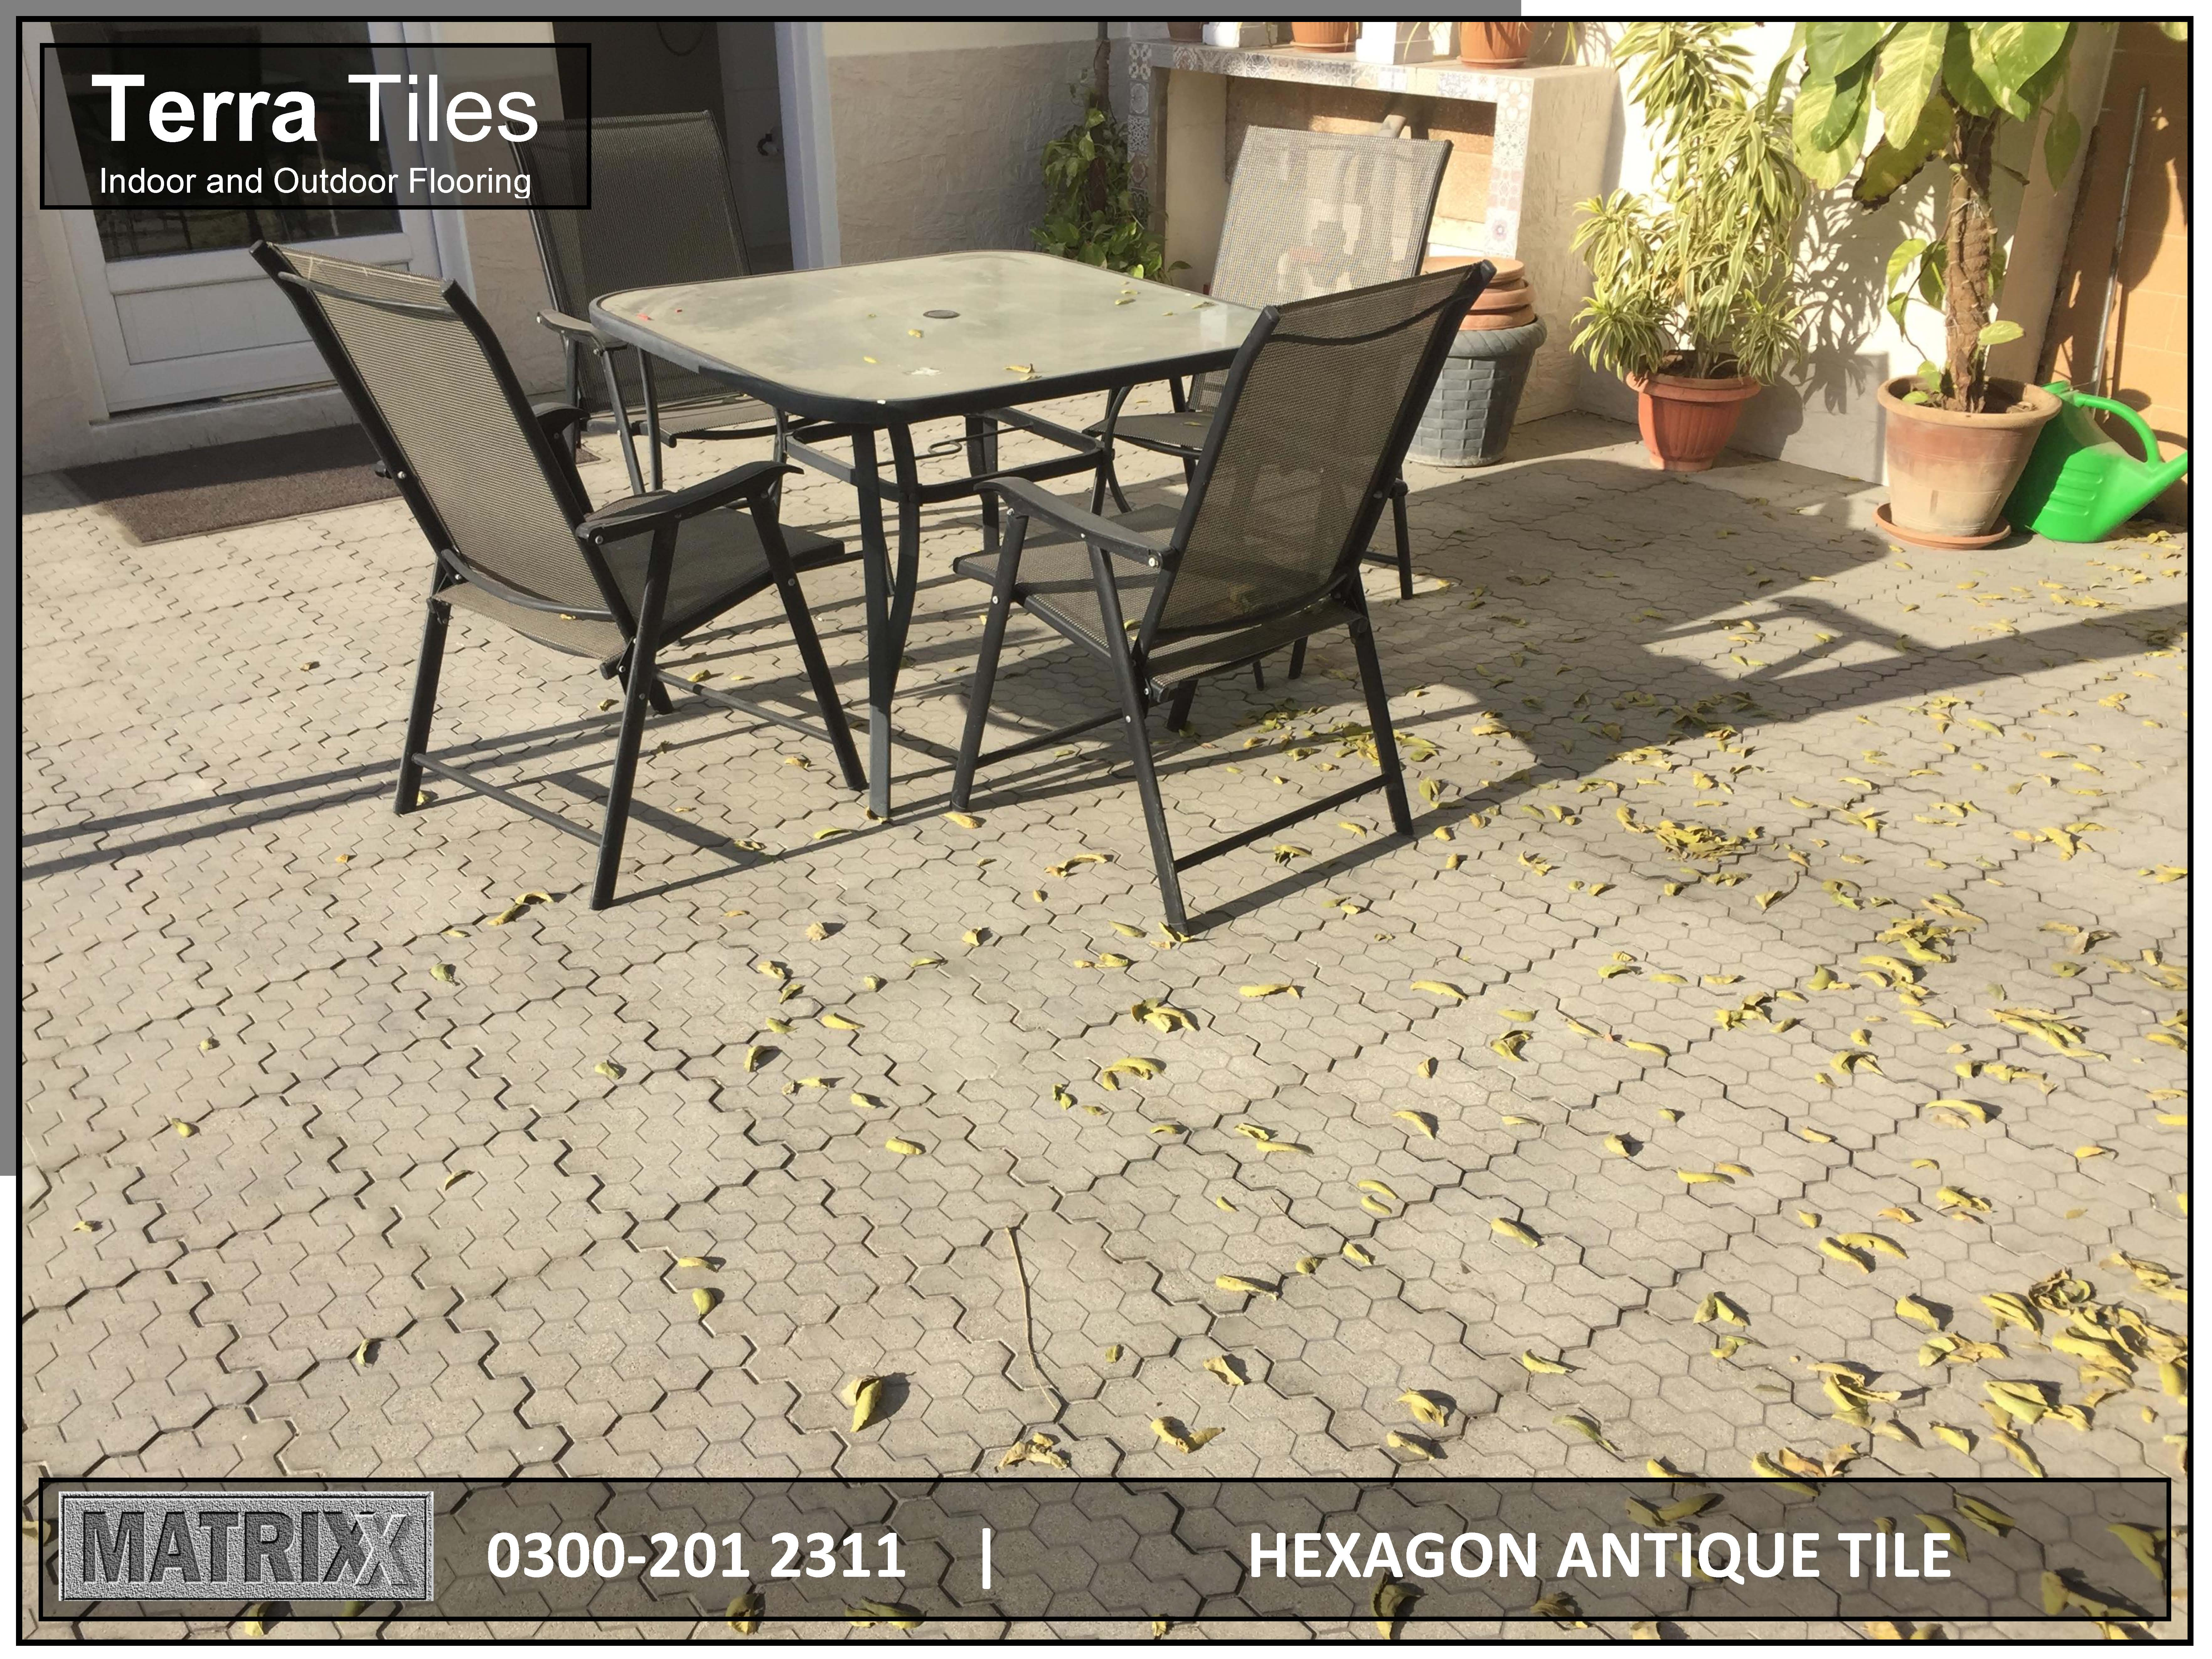 Antique Tile - Matrixx